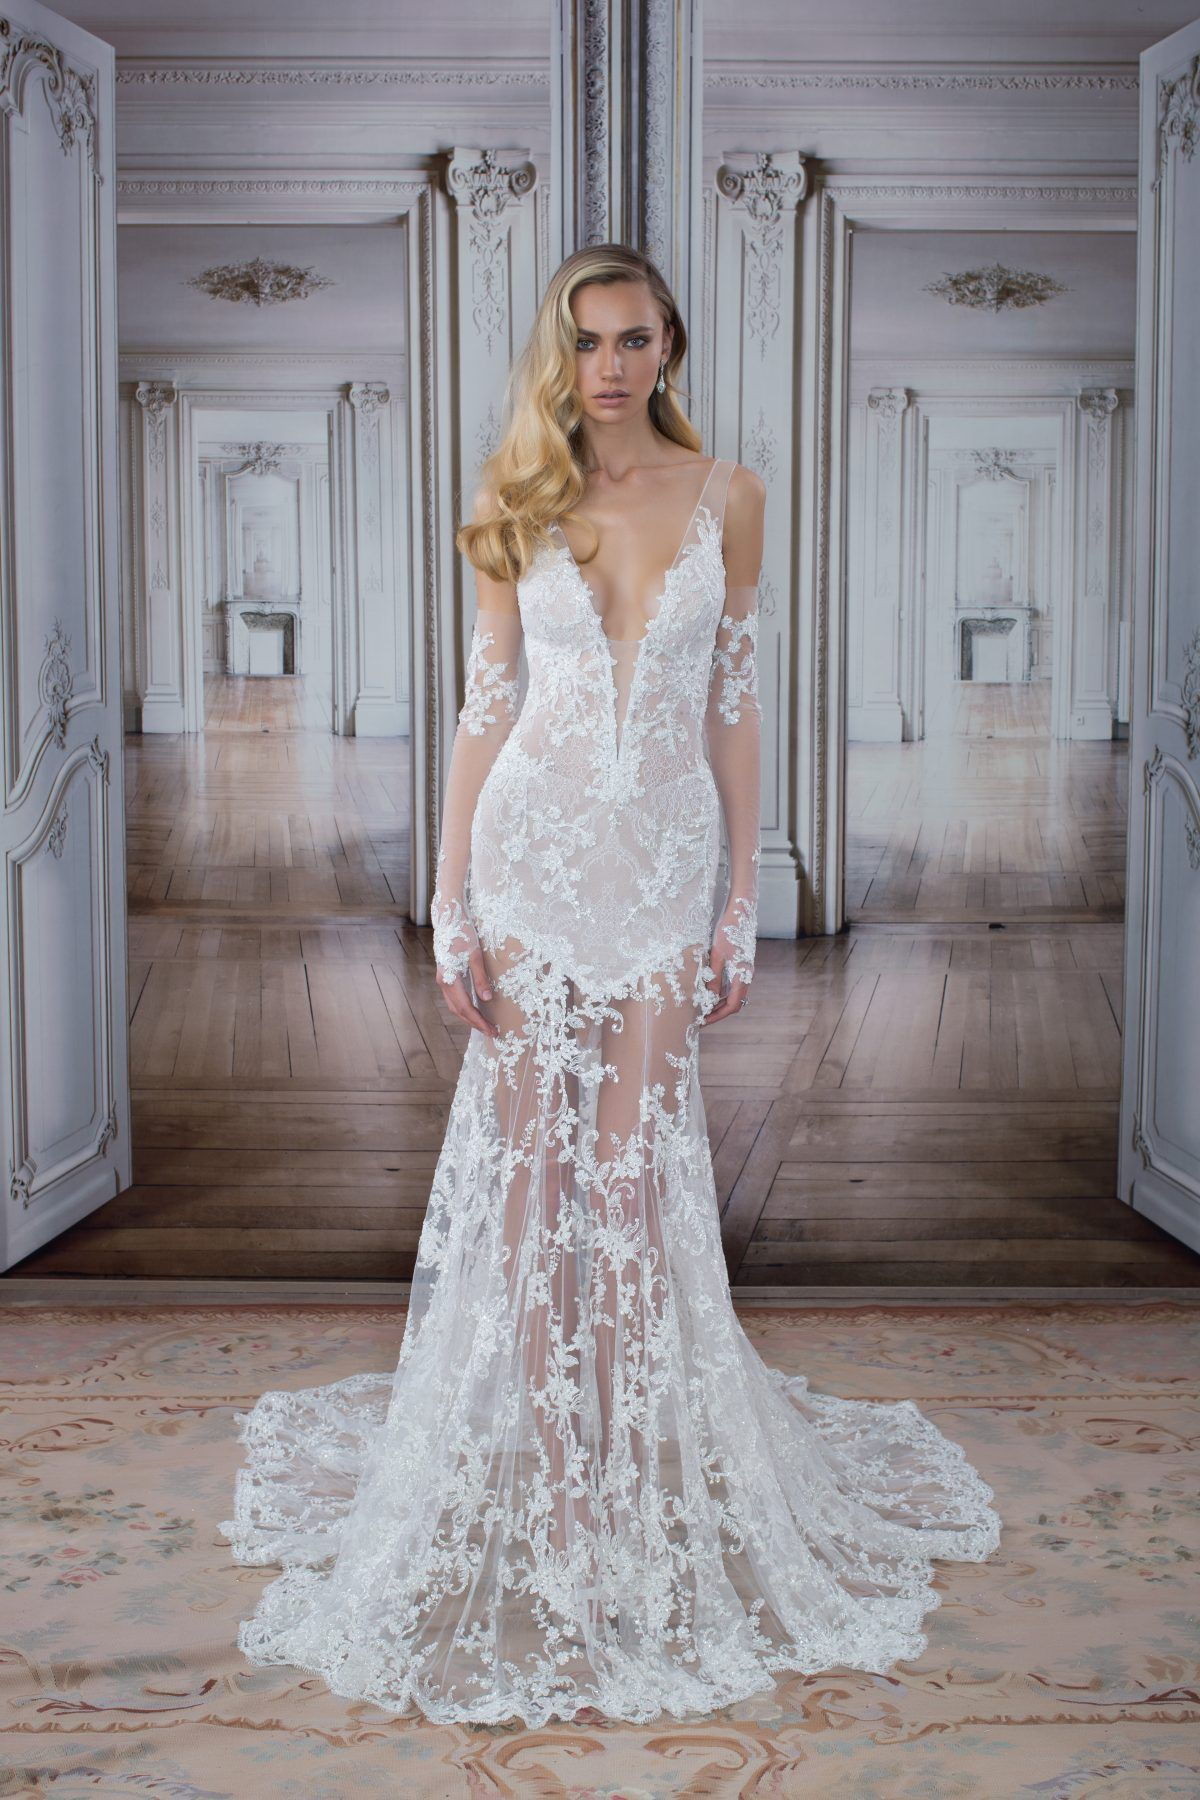 f5c25f4f019a Sexy Sheath Wedding Dress by Love by Pnina Tornai - Image 1 zoomed in